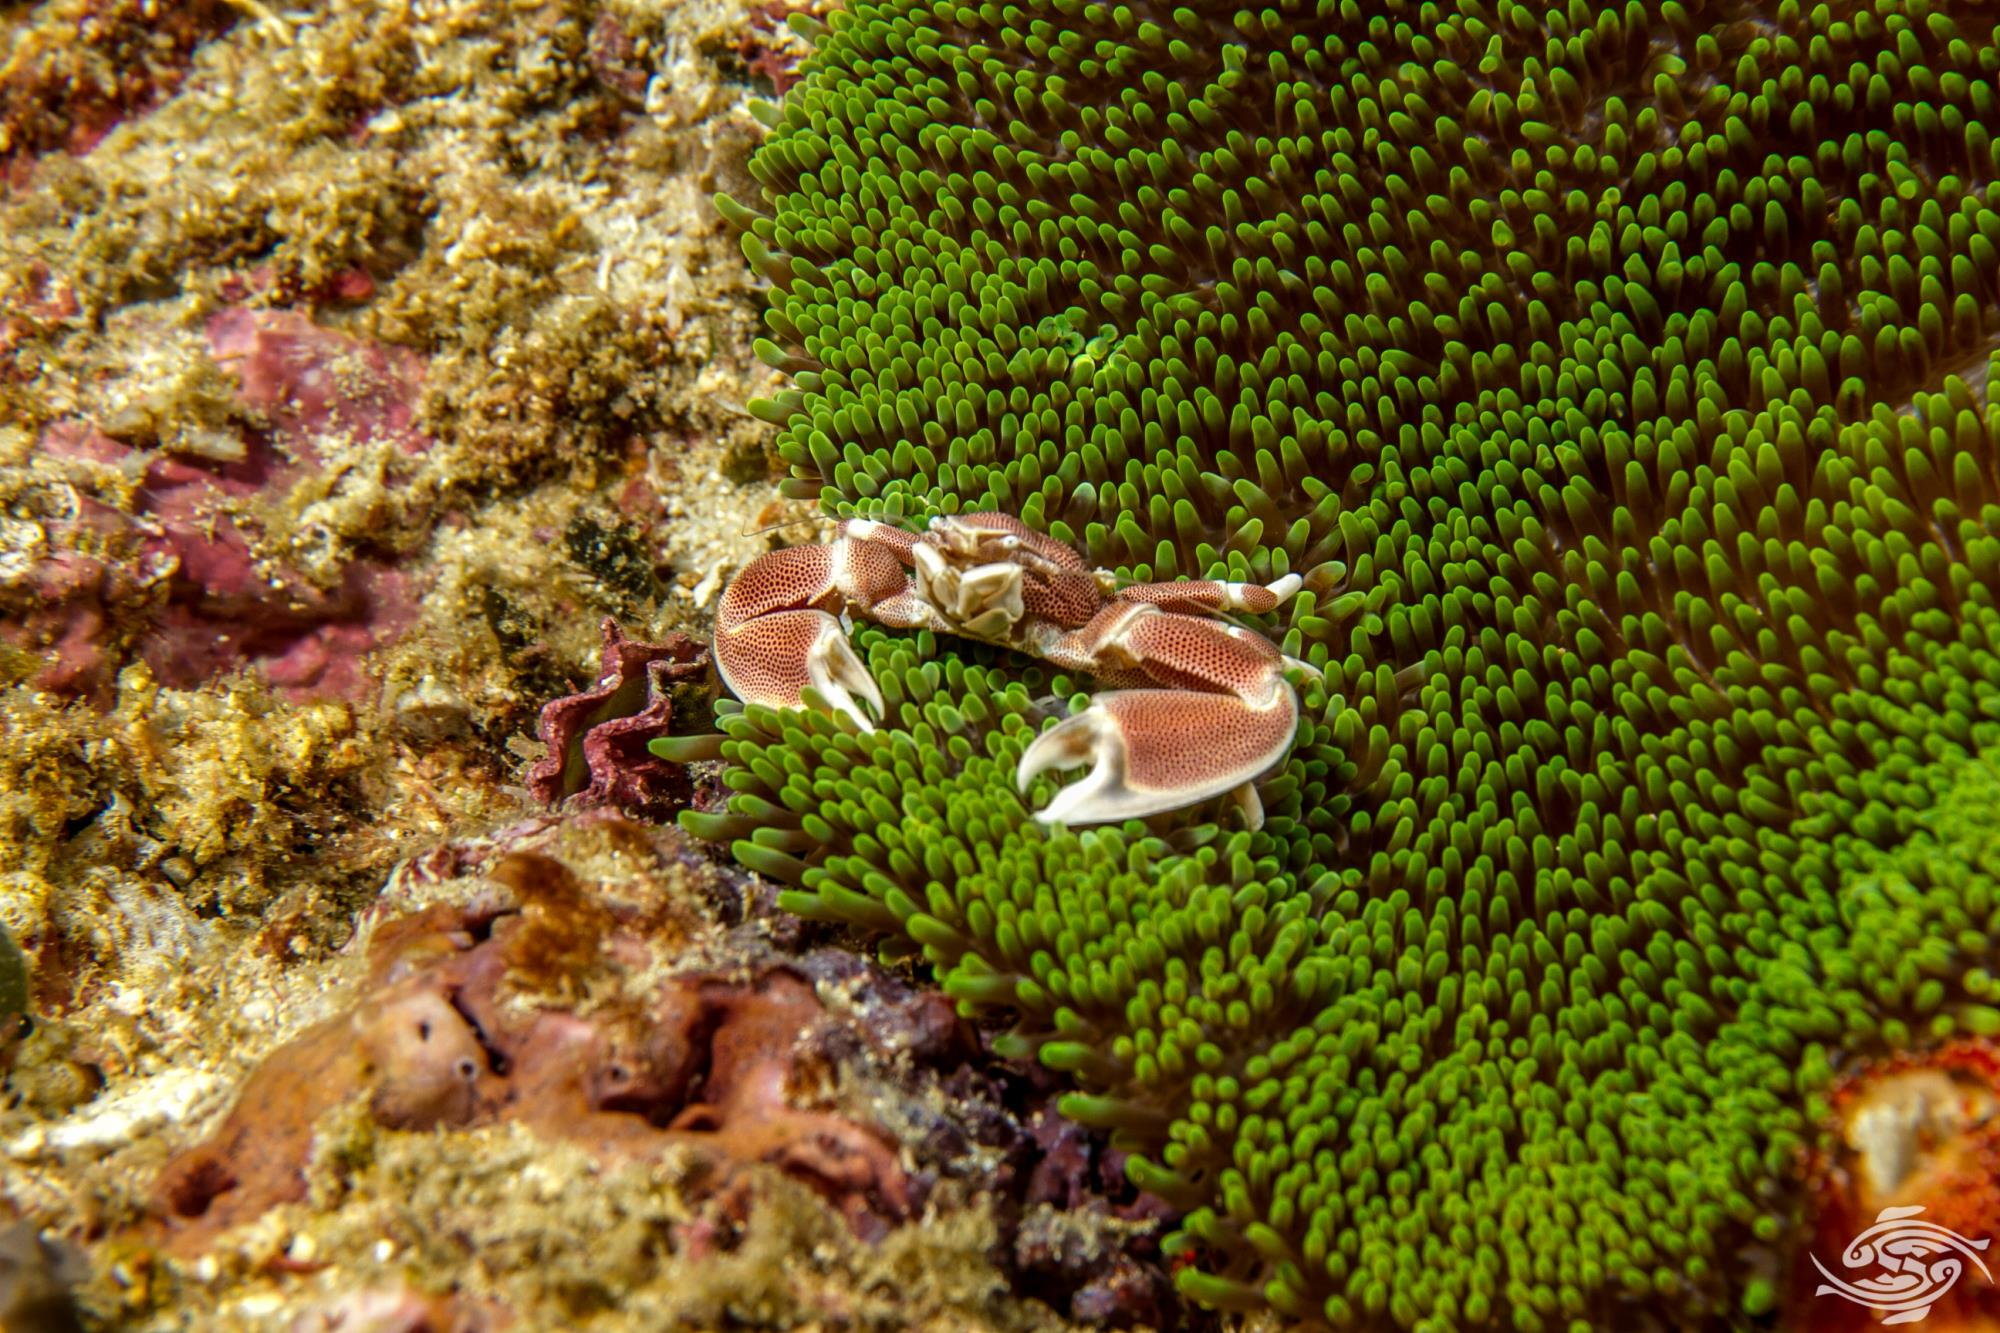 Porcelain Anemone Crab, Neopetrolisthes maculatus is also known as the Spotted porcelain crab.